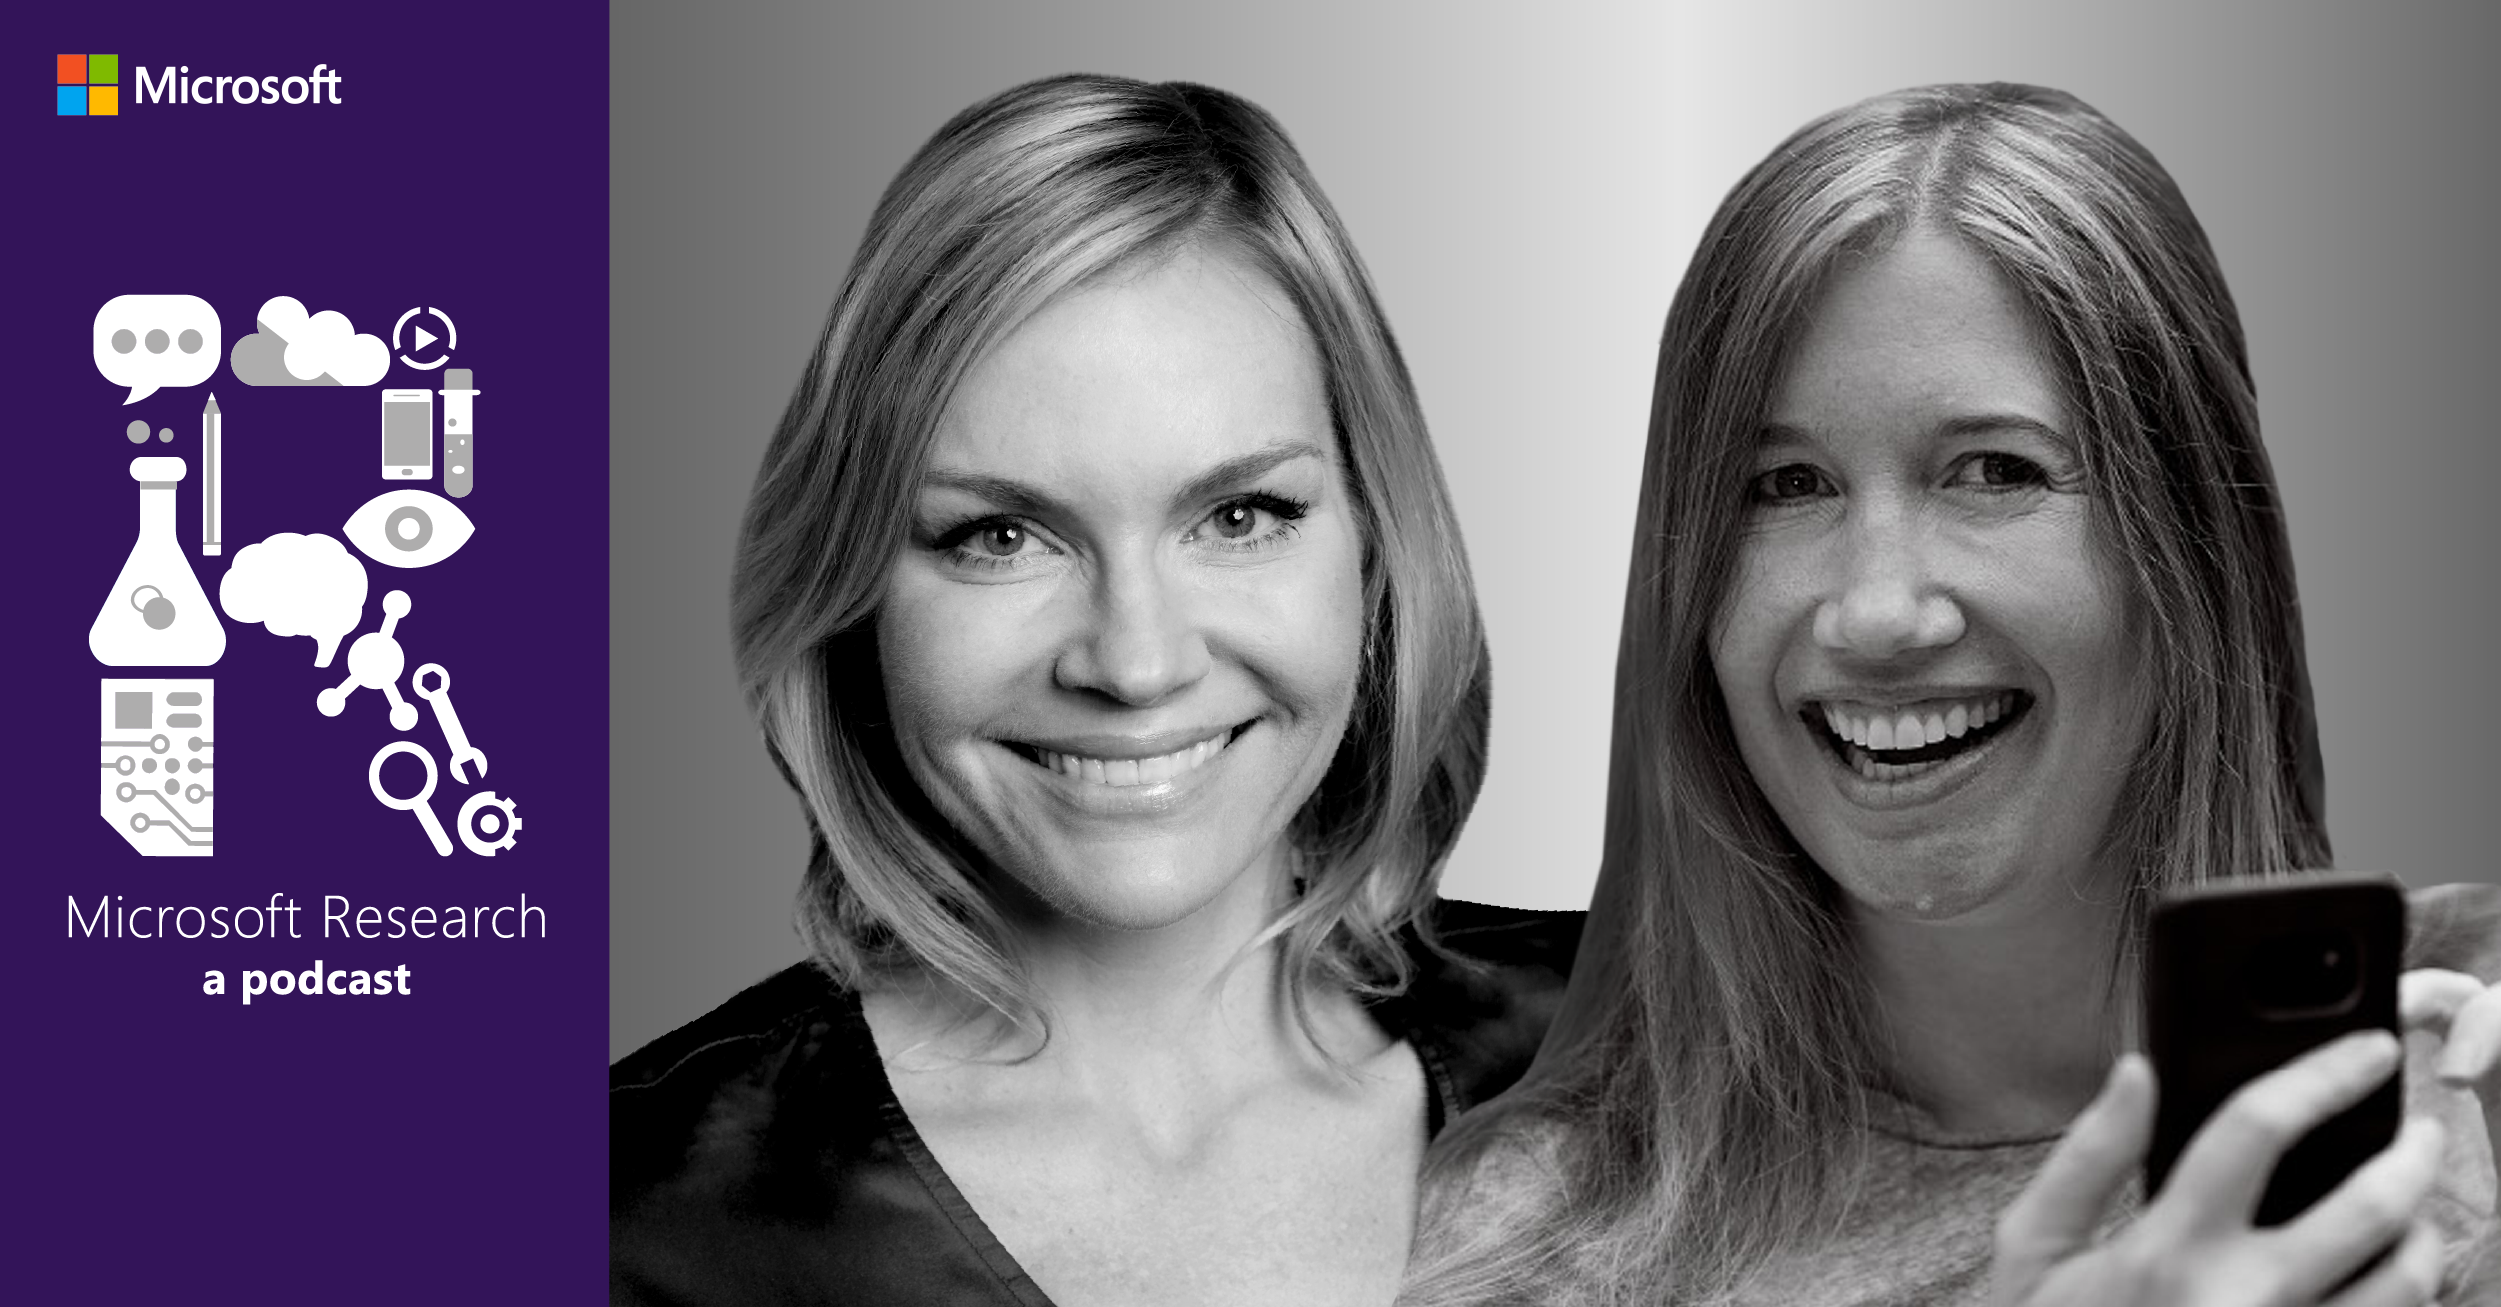 New Future of Work: Redefining workspaces as hybrid and remote work become more prevalent with Jaime Teevan and Ginger Hudson